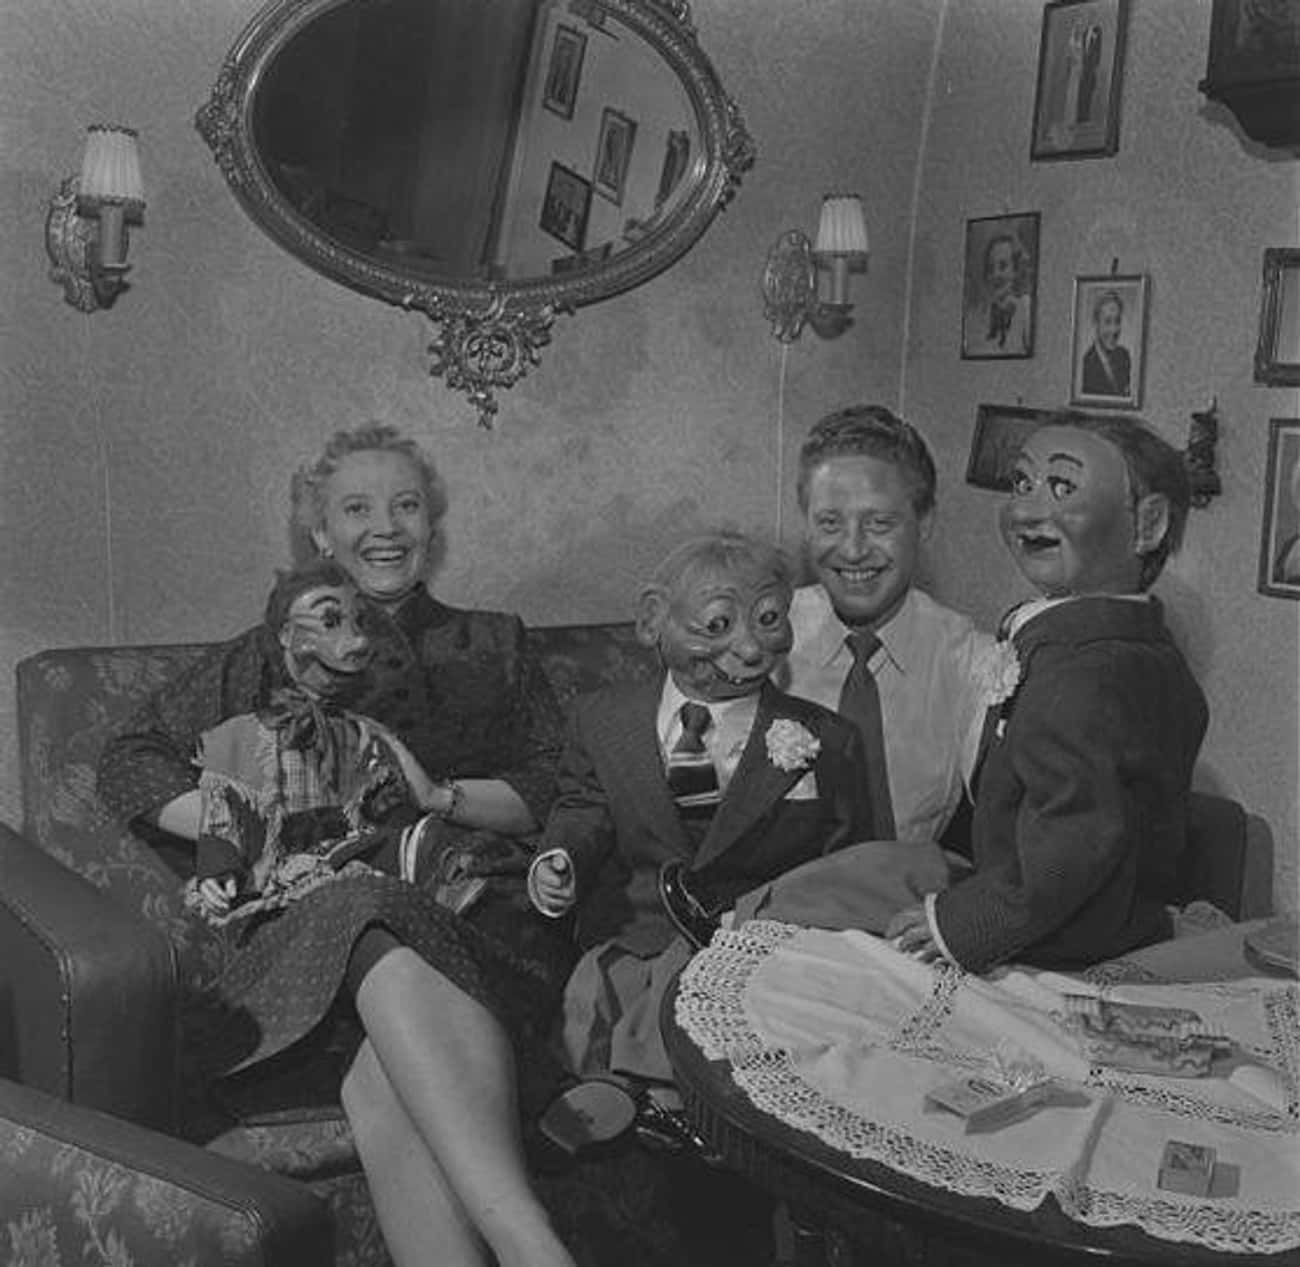 Norwegian Ventriloquists And Their Dummies (1954)